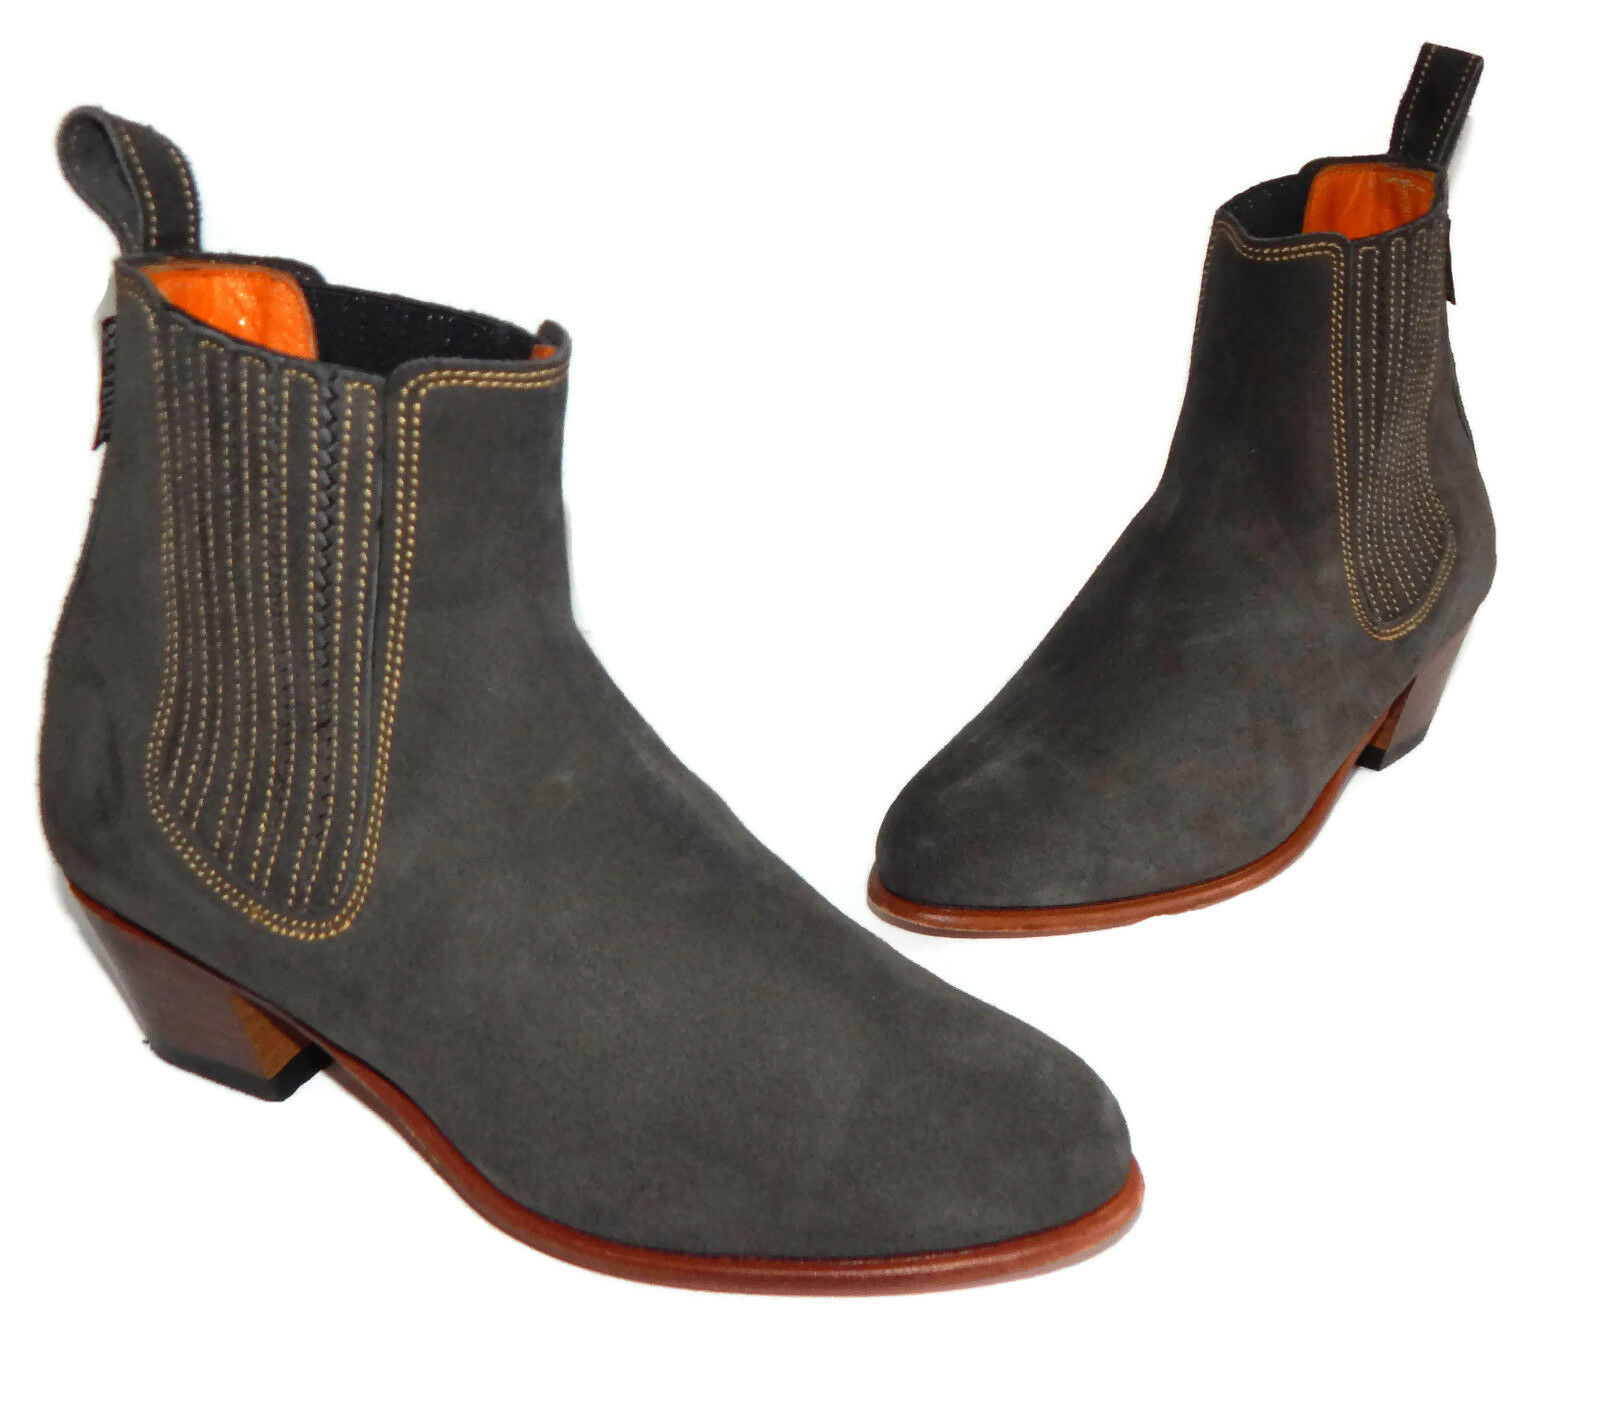 Penelope Chivers Gray Suede Leather Side Stitching Spain Ankle Boots Sz - 36.5